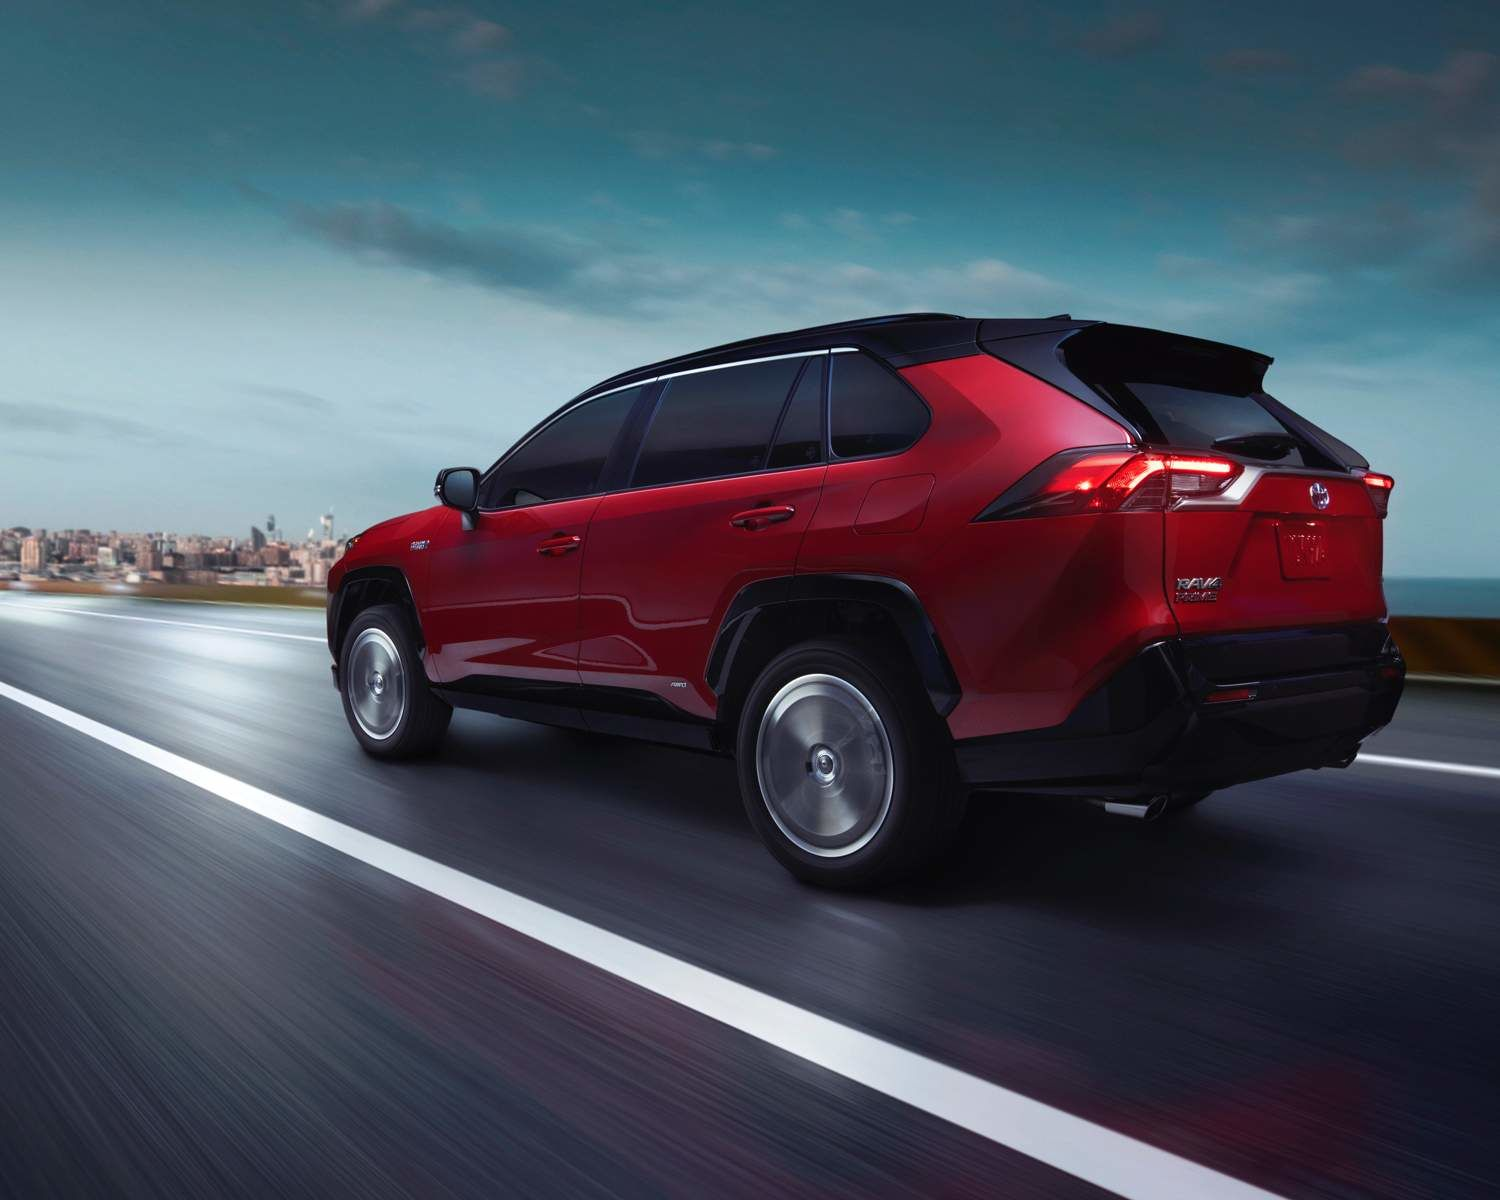 RAV4Prime XSE shown in Supersonic Red with Black Roof